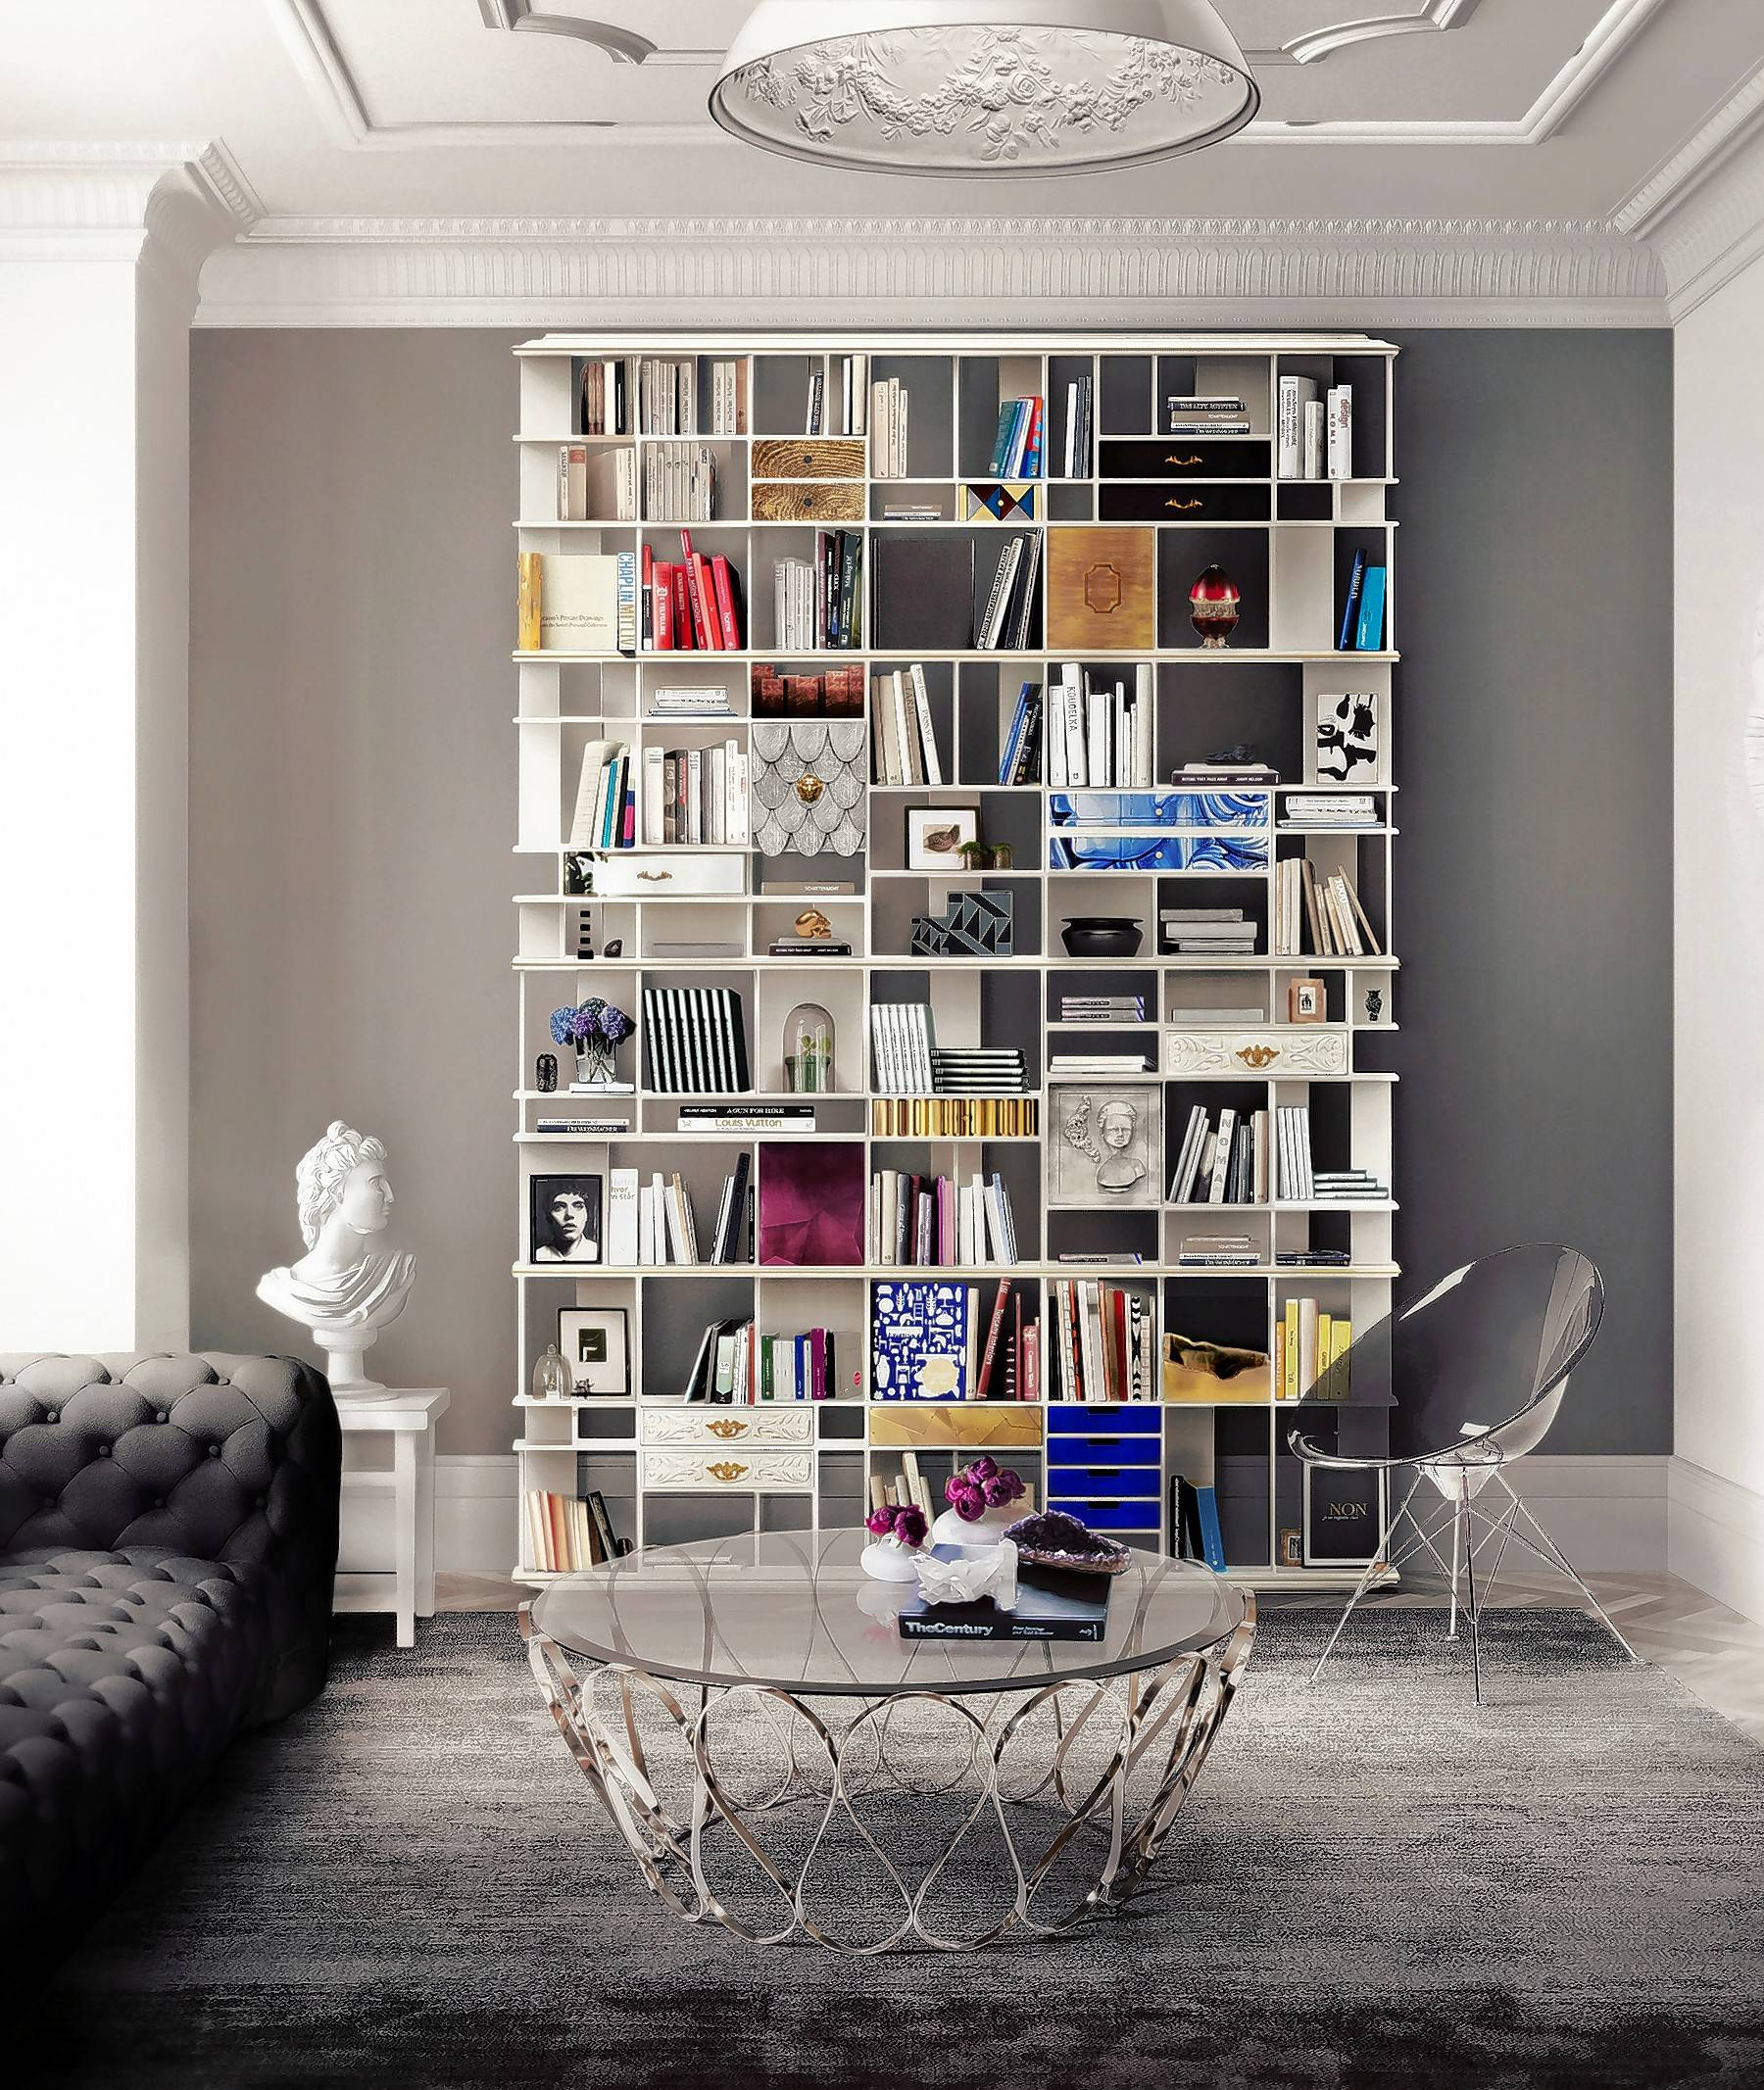 In this modern, Italian-style shelf unit, we see how books, small photo albums, tiny objects and picture frames can create one huge wall of rhythm.